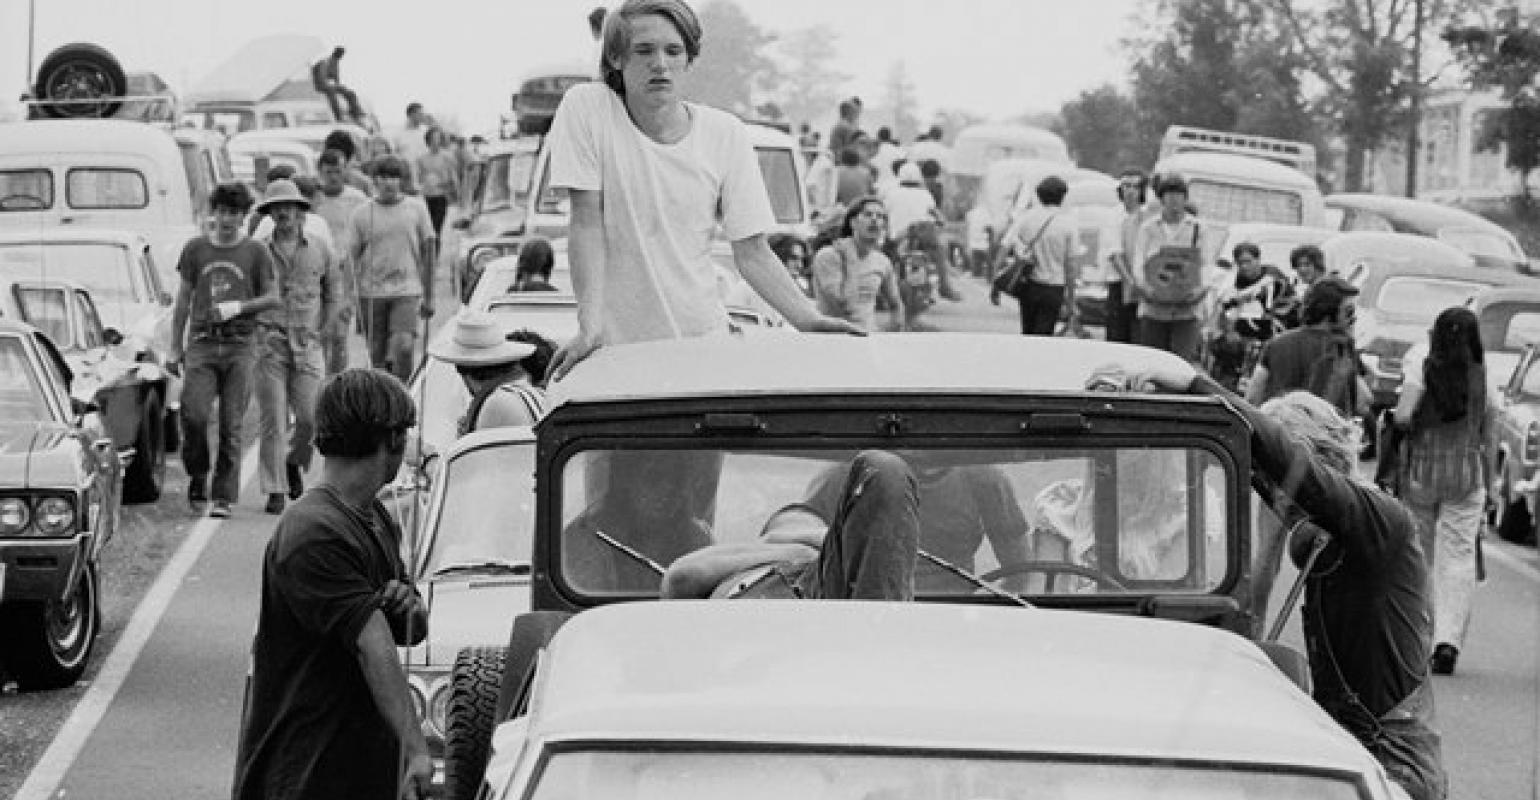 Car Sharing Concept Traces Roots To 60s Counterculture